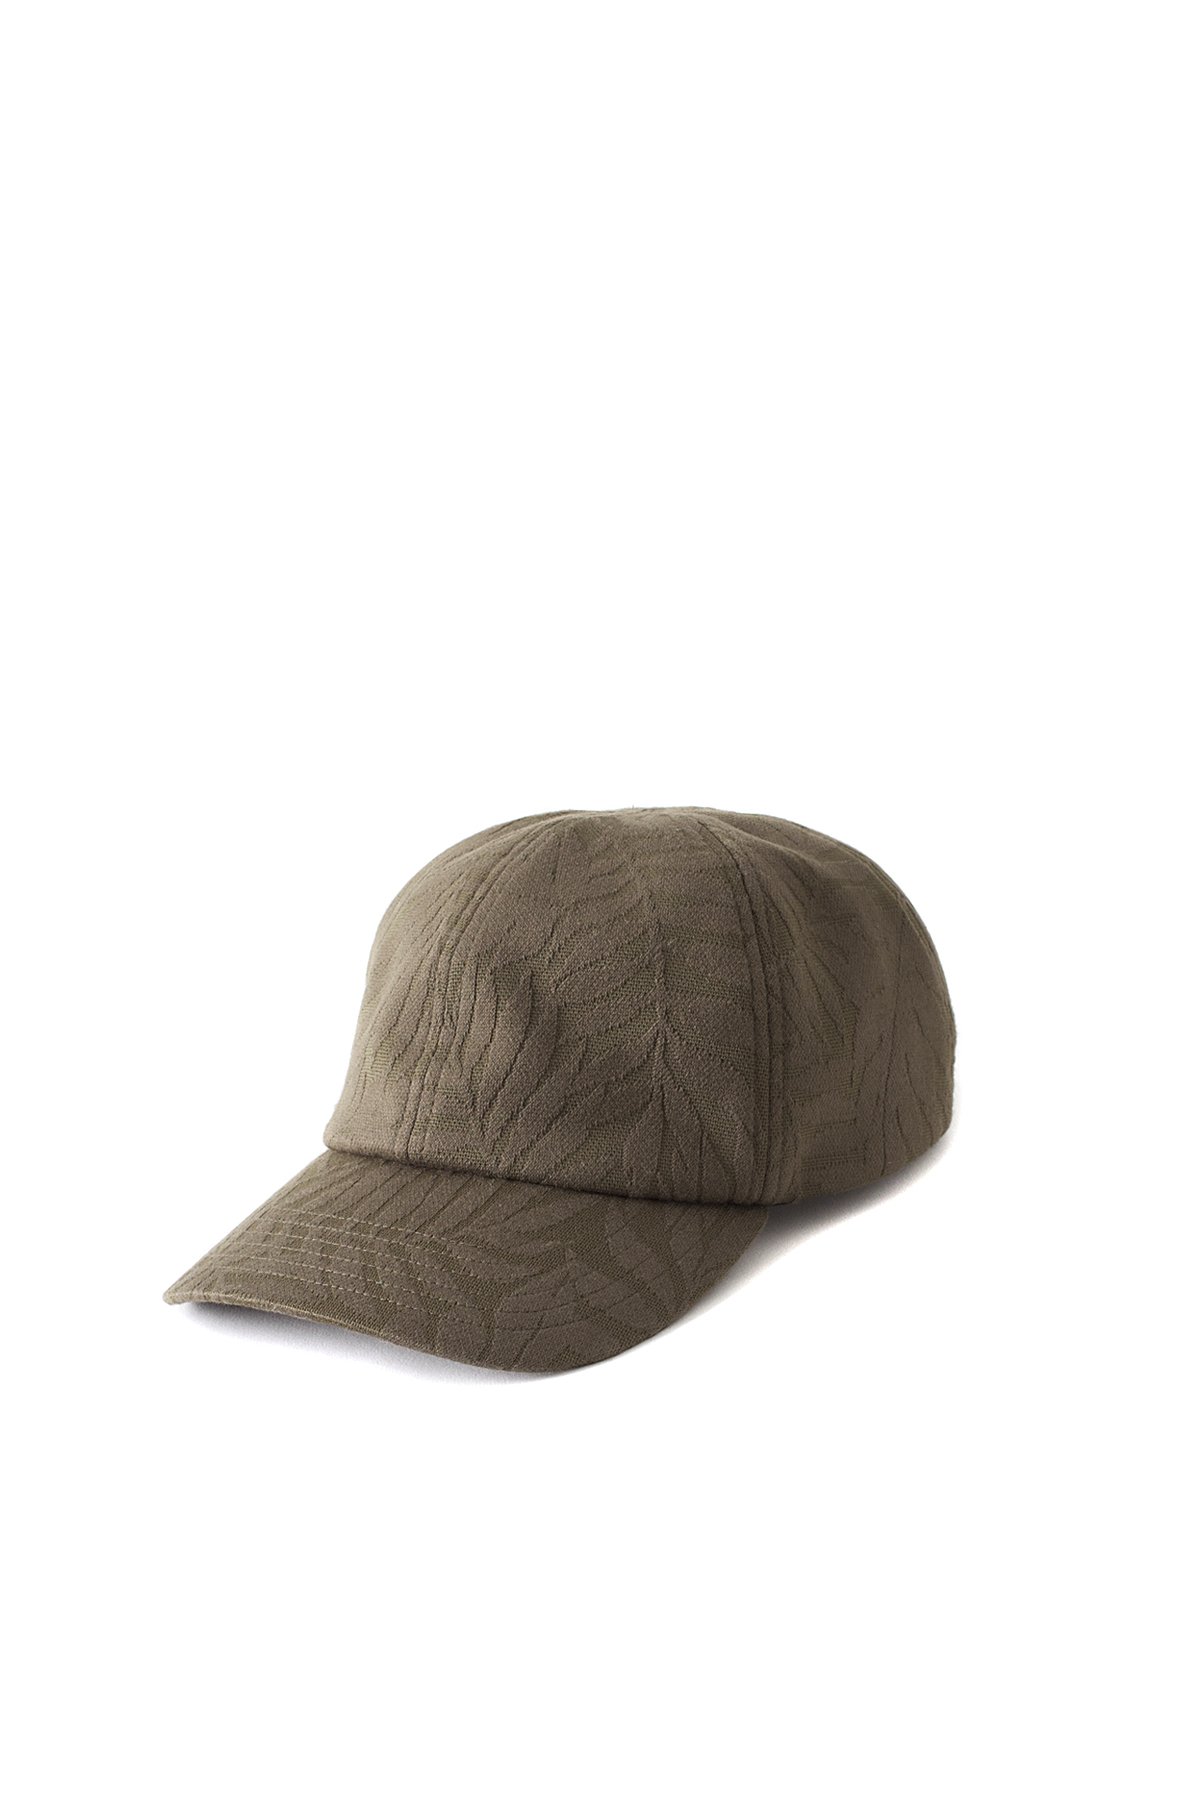 Curly : Palm Cap (Olive JAQ)